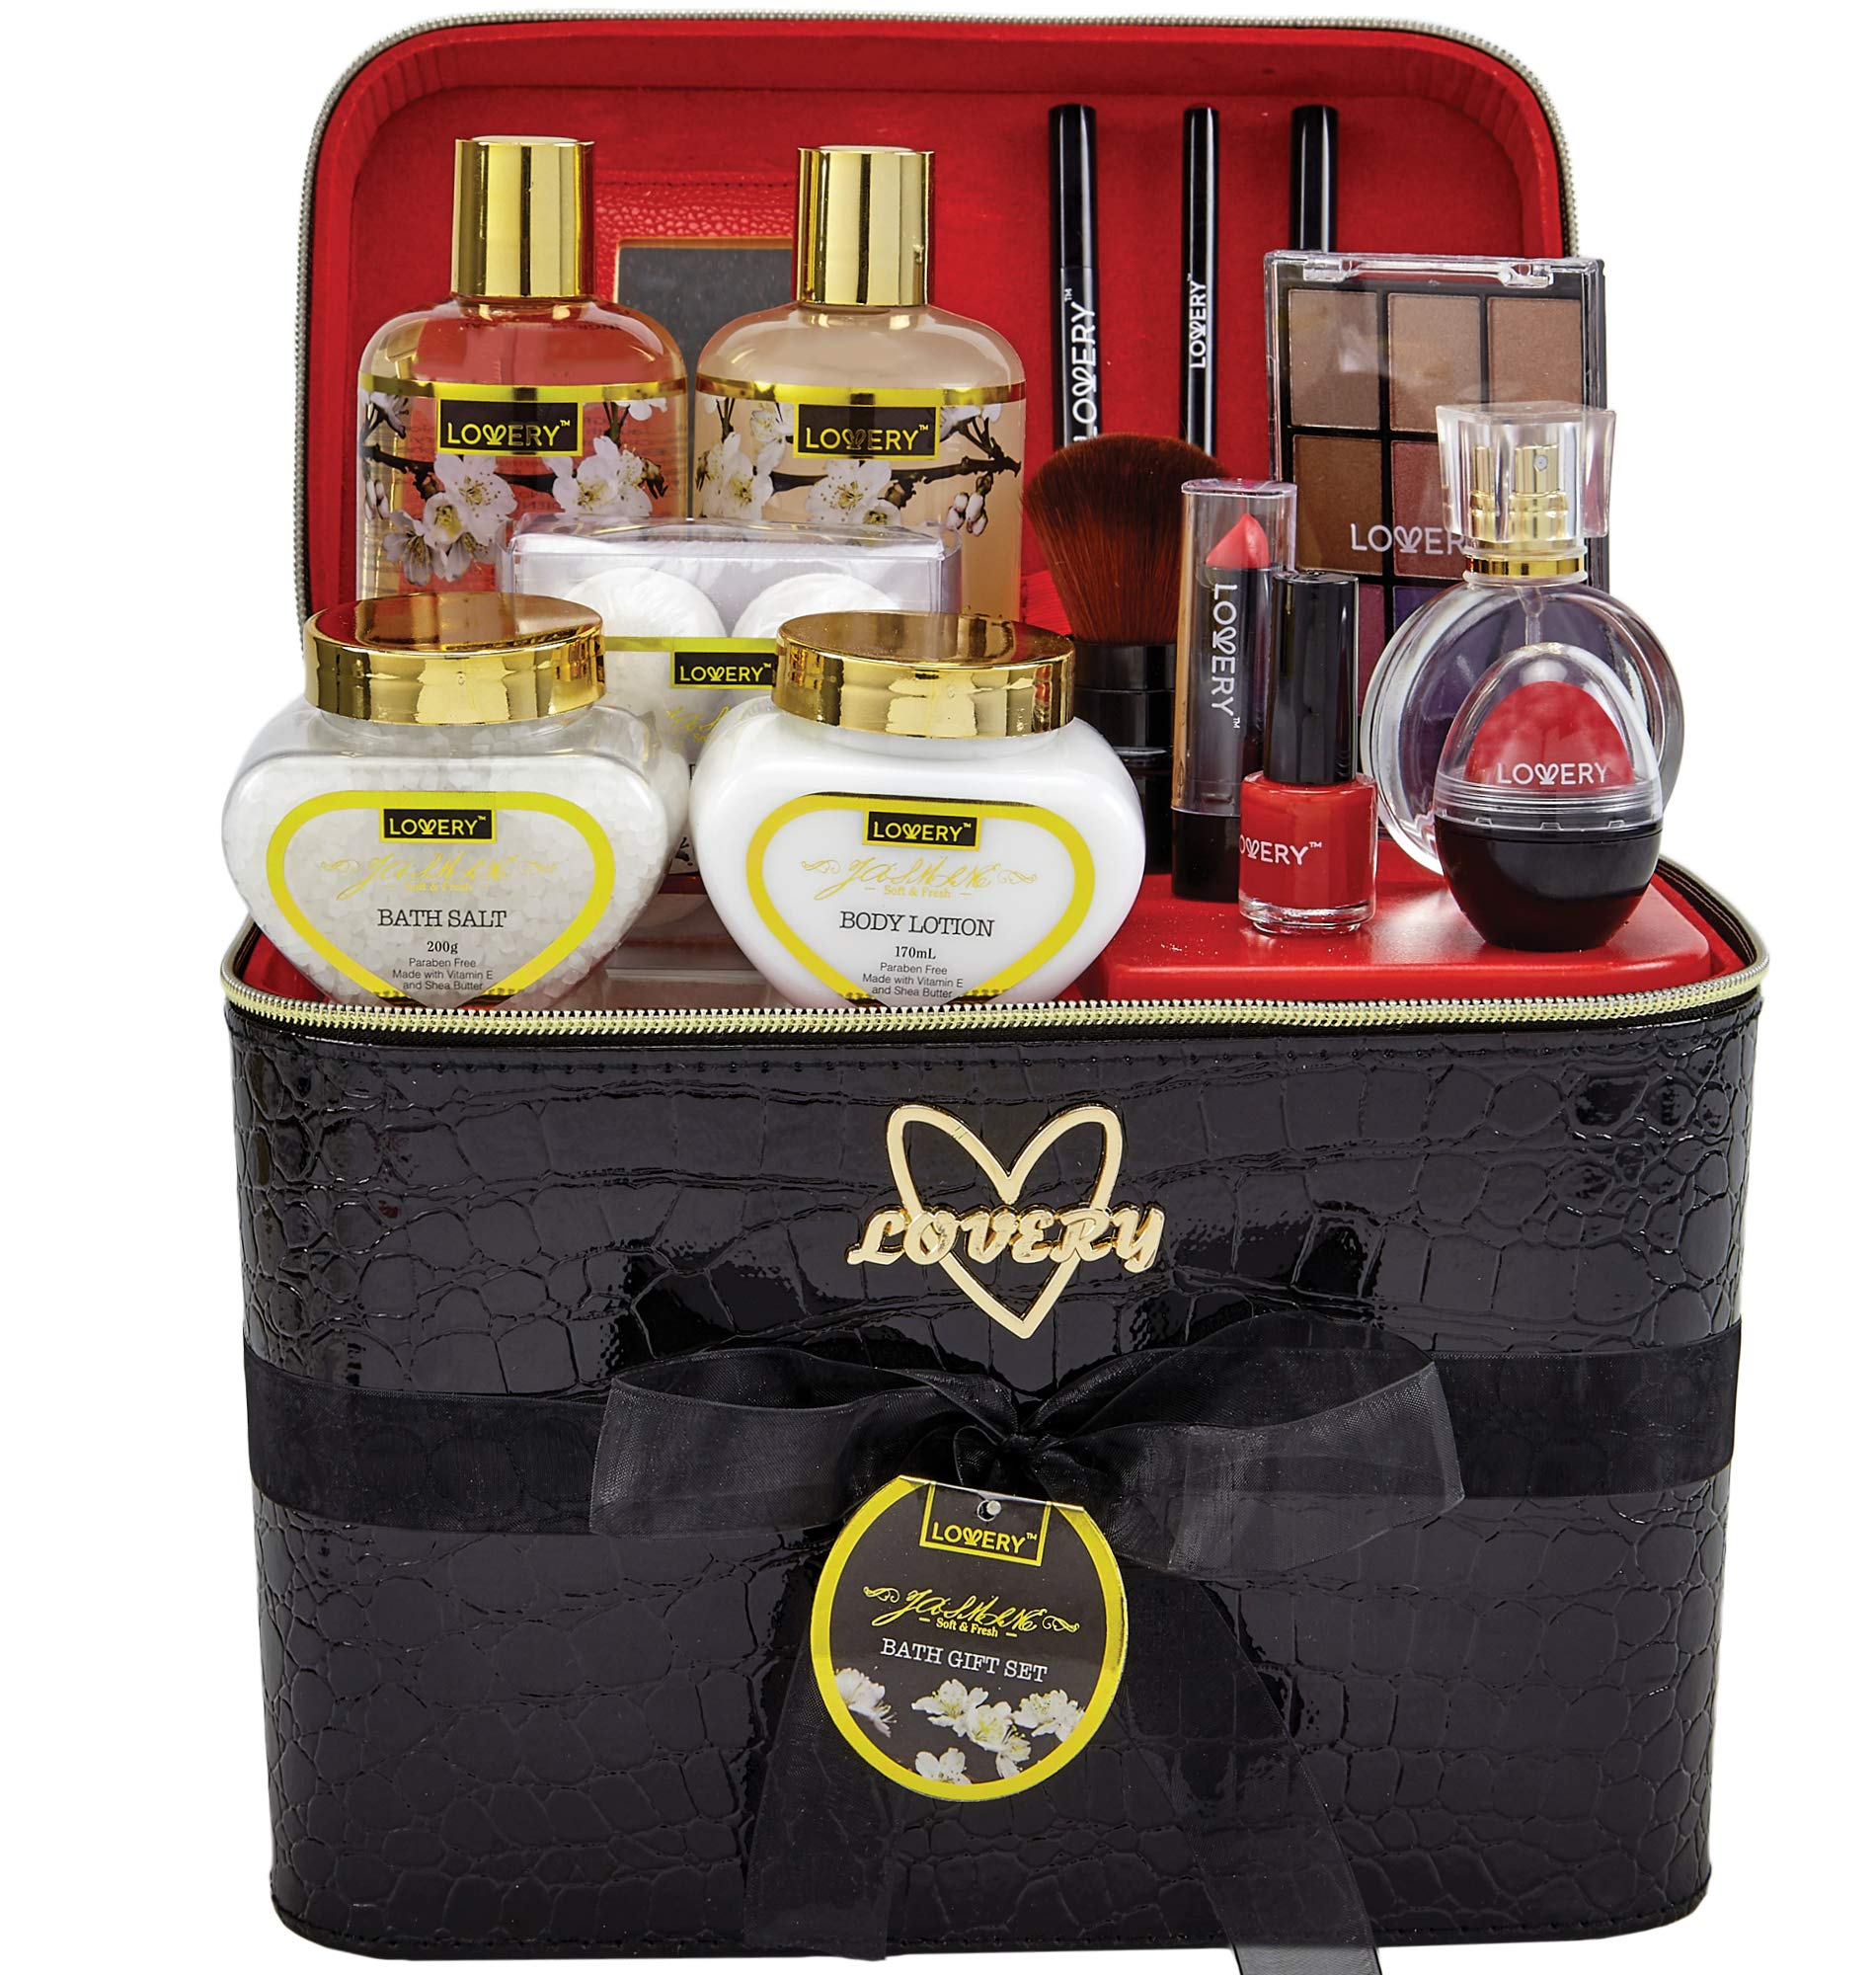 Premium Bath and Body Gift Basket For Women - 30 Piece Set, Floral Jasmine Home Spa & Makeup Set, Includes Cosmetic Pencils, Lip Balms, Lotions, Perfume, Black Leather Cosmetic Bag & Much More